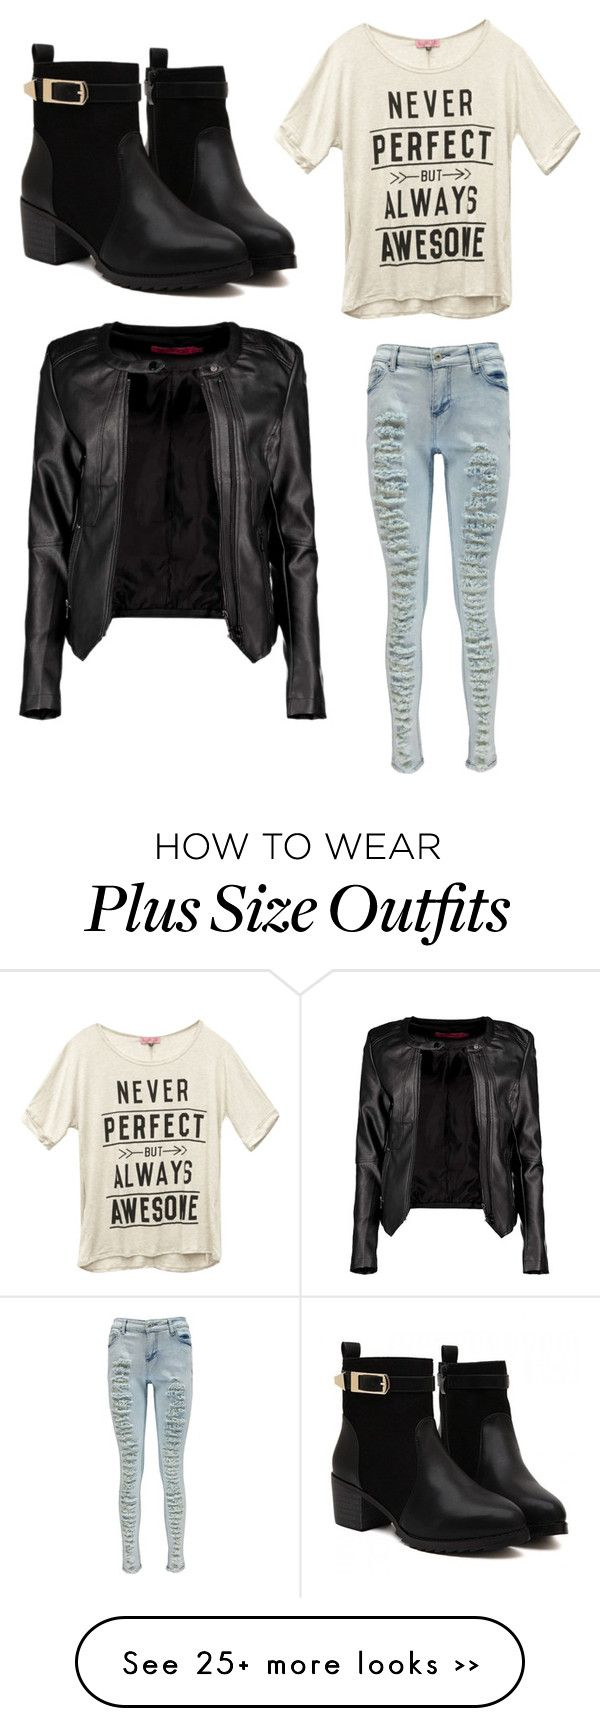 """Untitled #91"" by jennessa02 on Polyvore featuring Wet Seal and Boohoo"